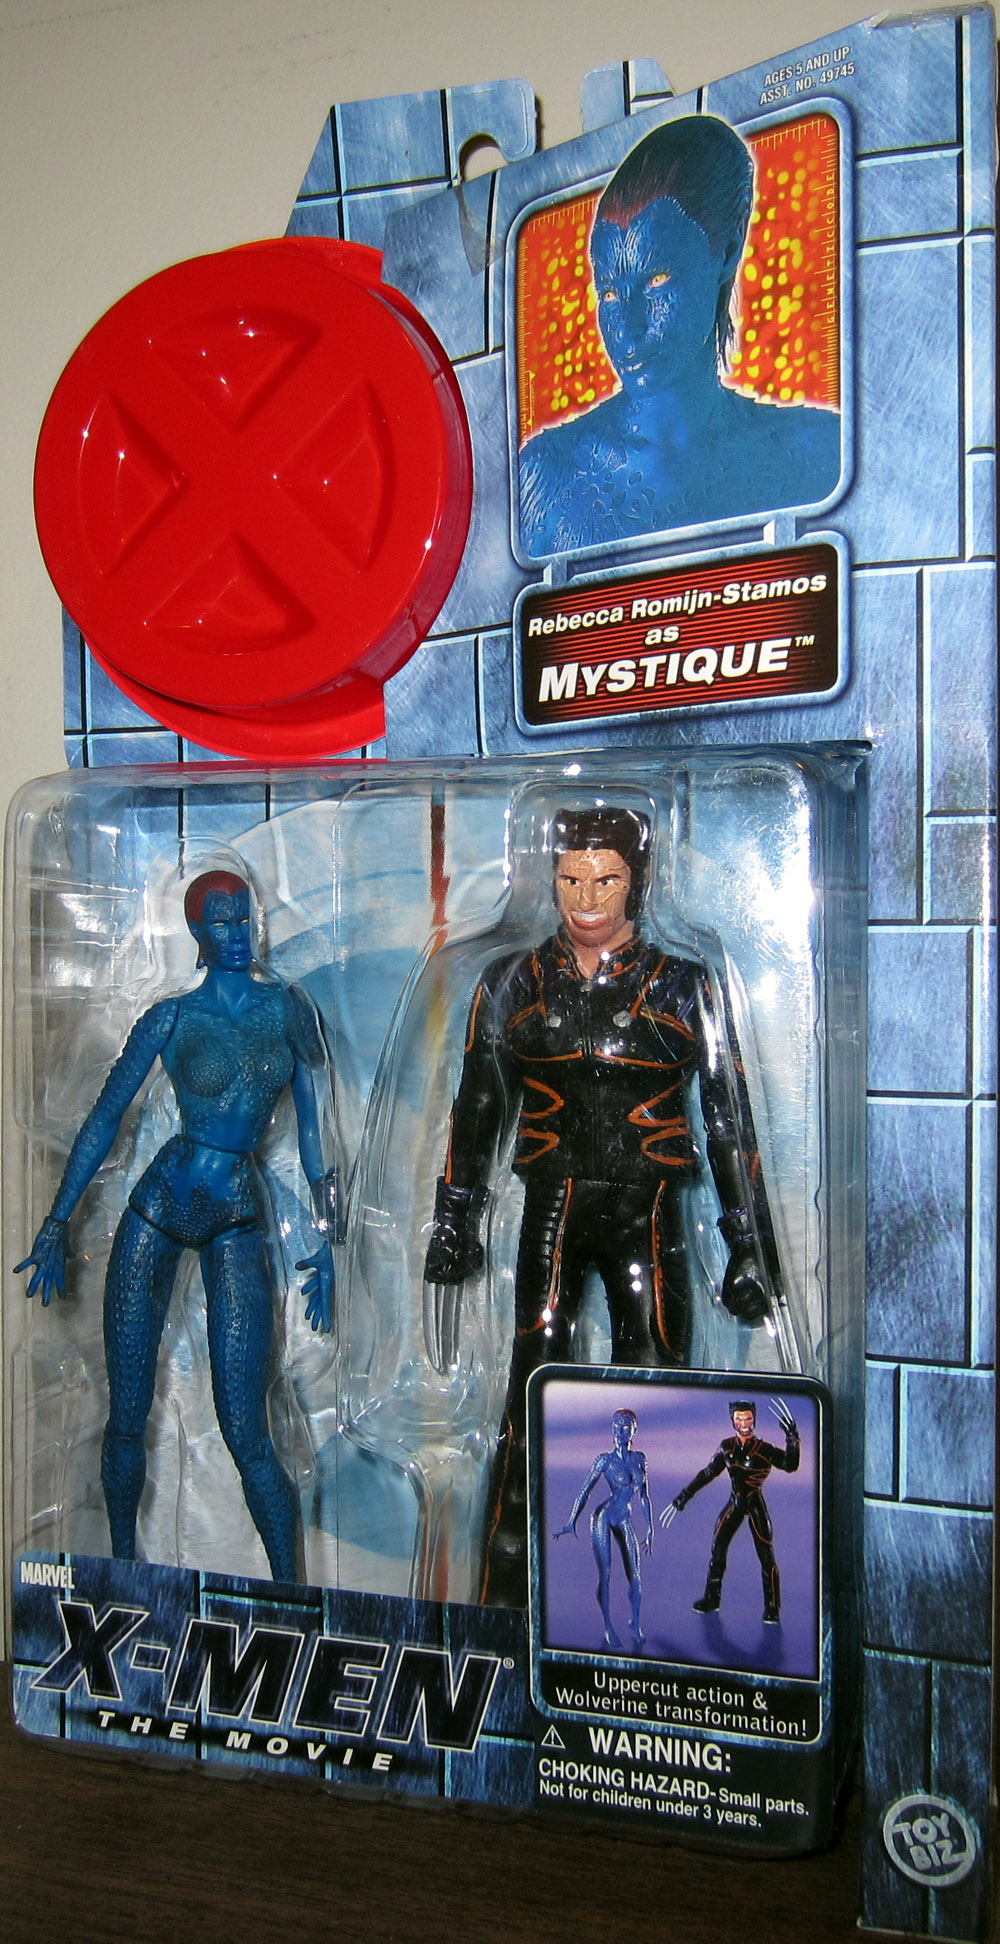 Mystique (movie)